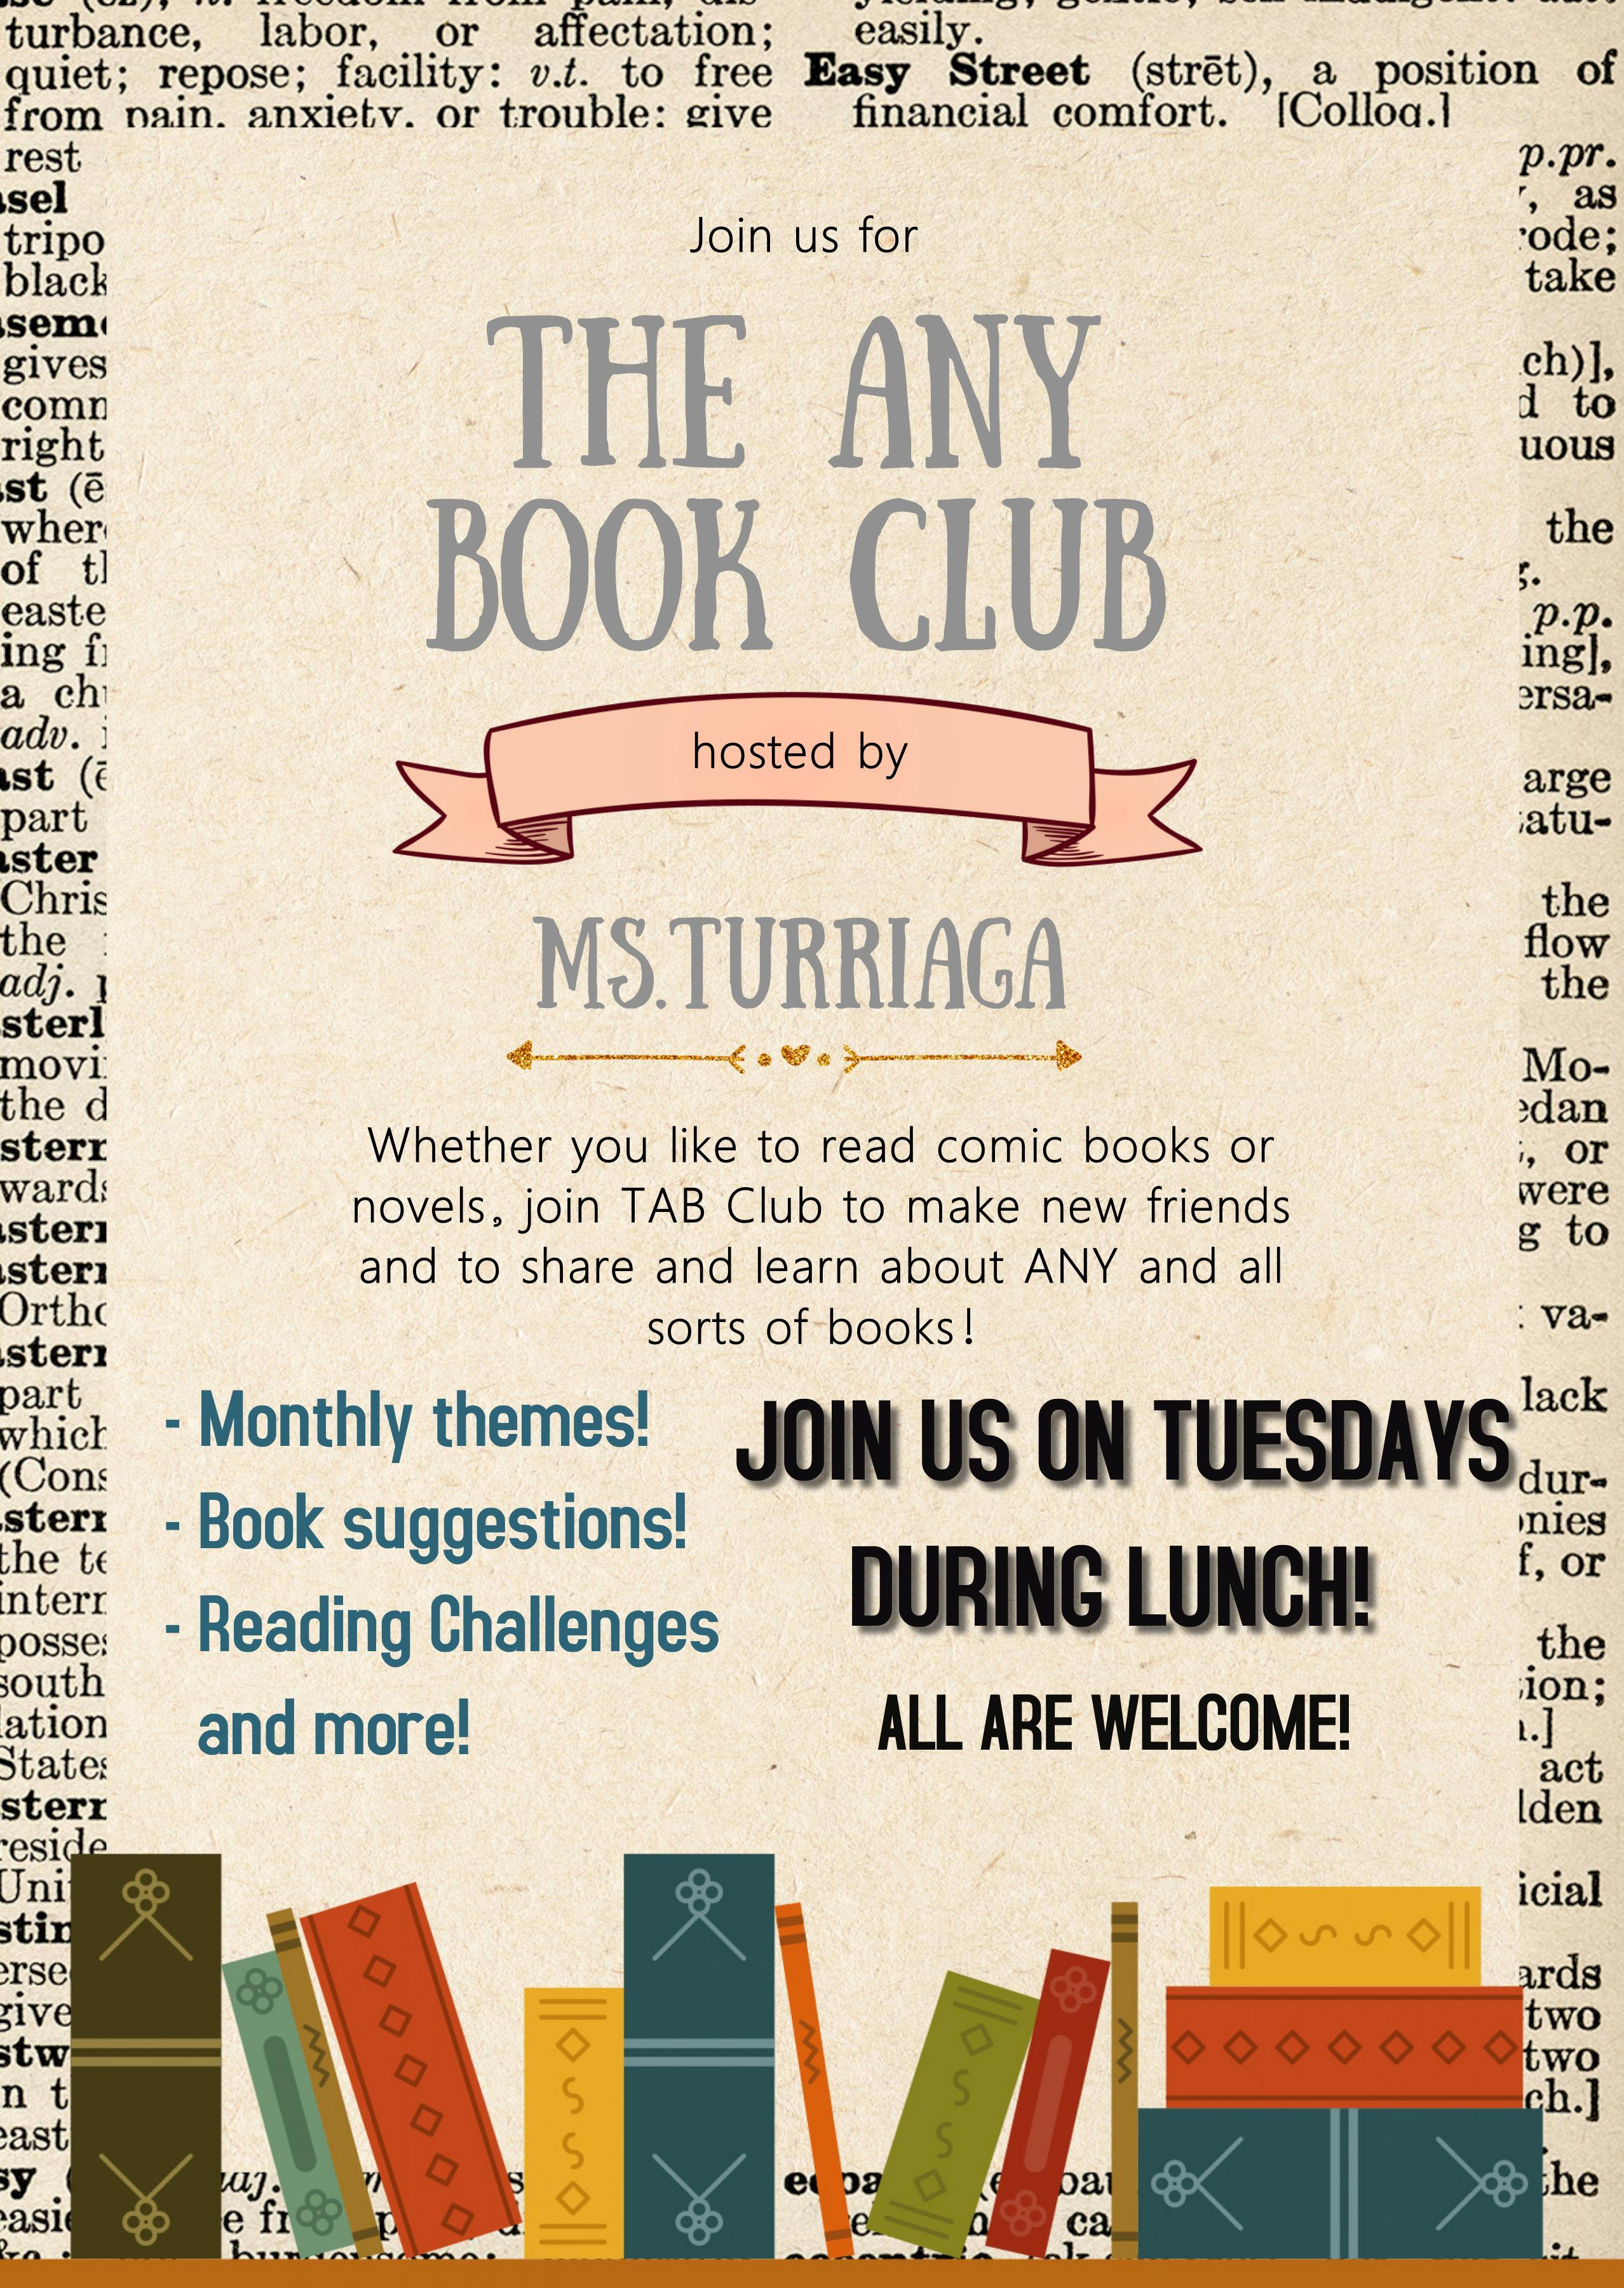 Join The Any Book Club during Lunch on Tuesdays!